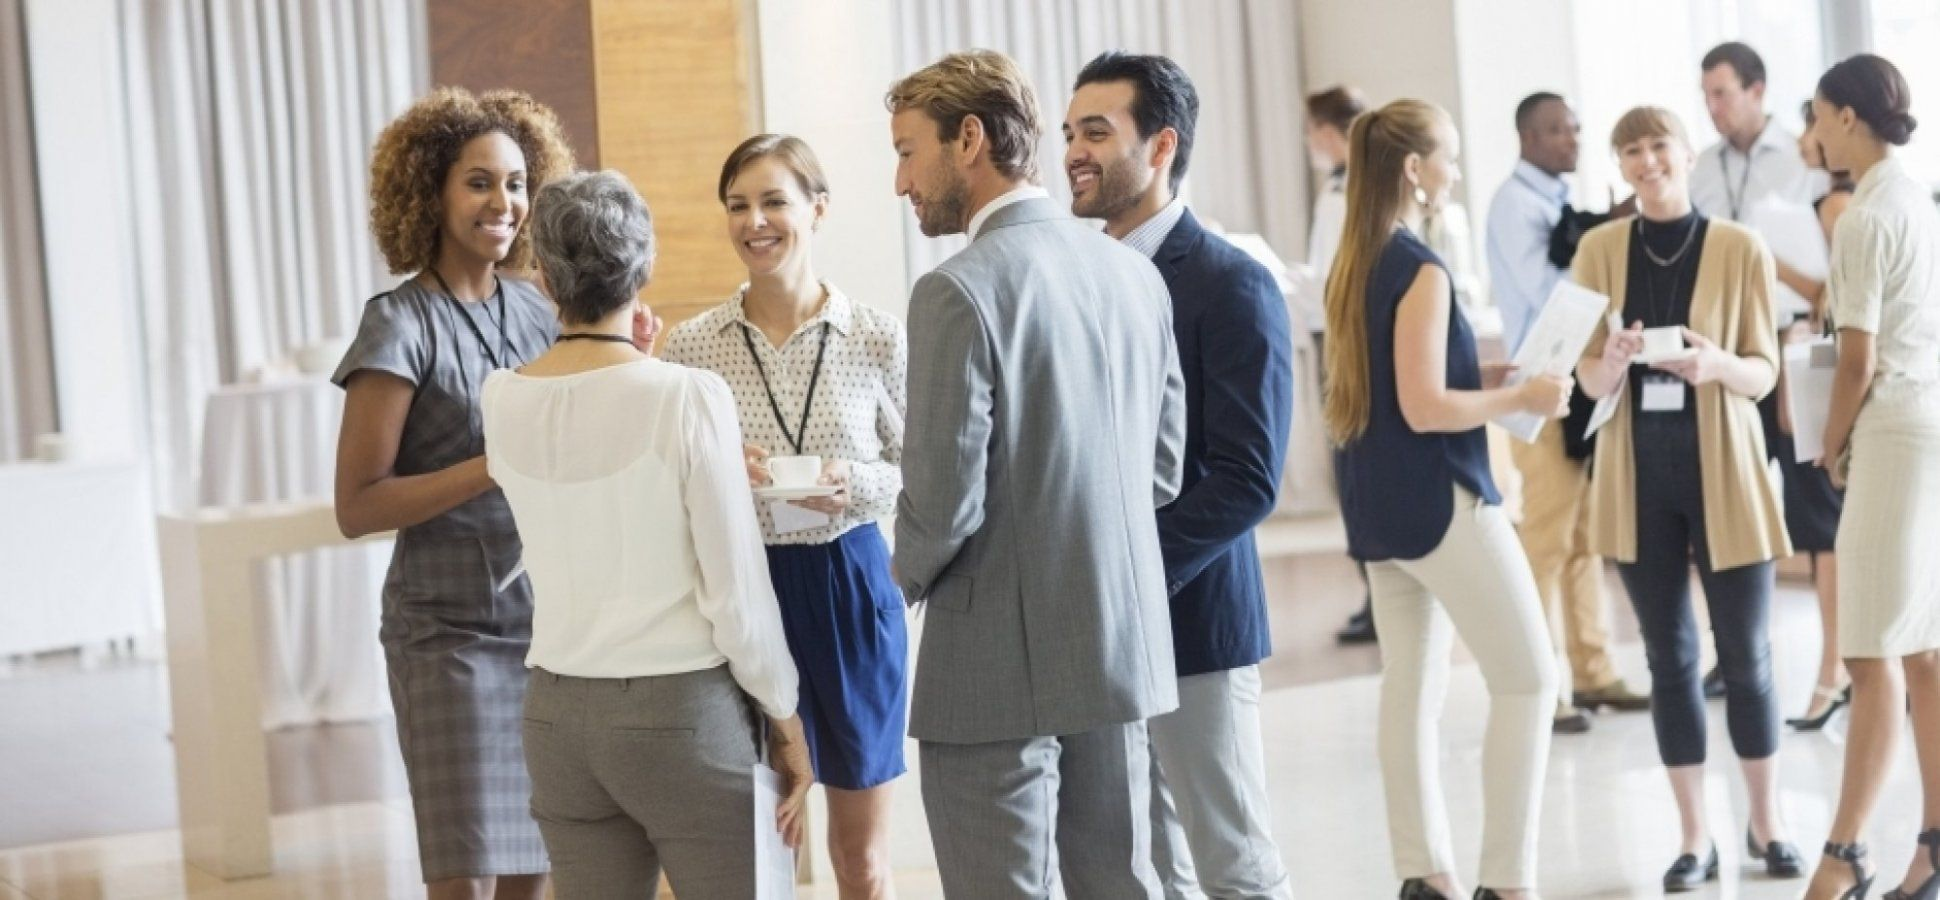 8 of the Worst Things to Say When Networking http://feeds.inc.com/~r/home/updates/~3/PsvGqI8xME4/8-of-the-worst-things-to-say-when-networking.html